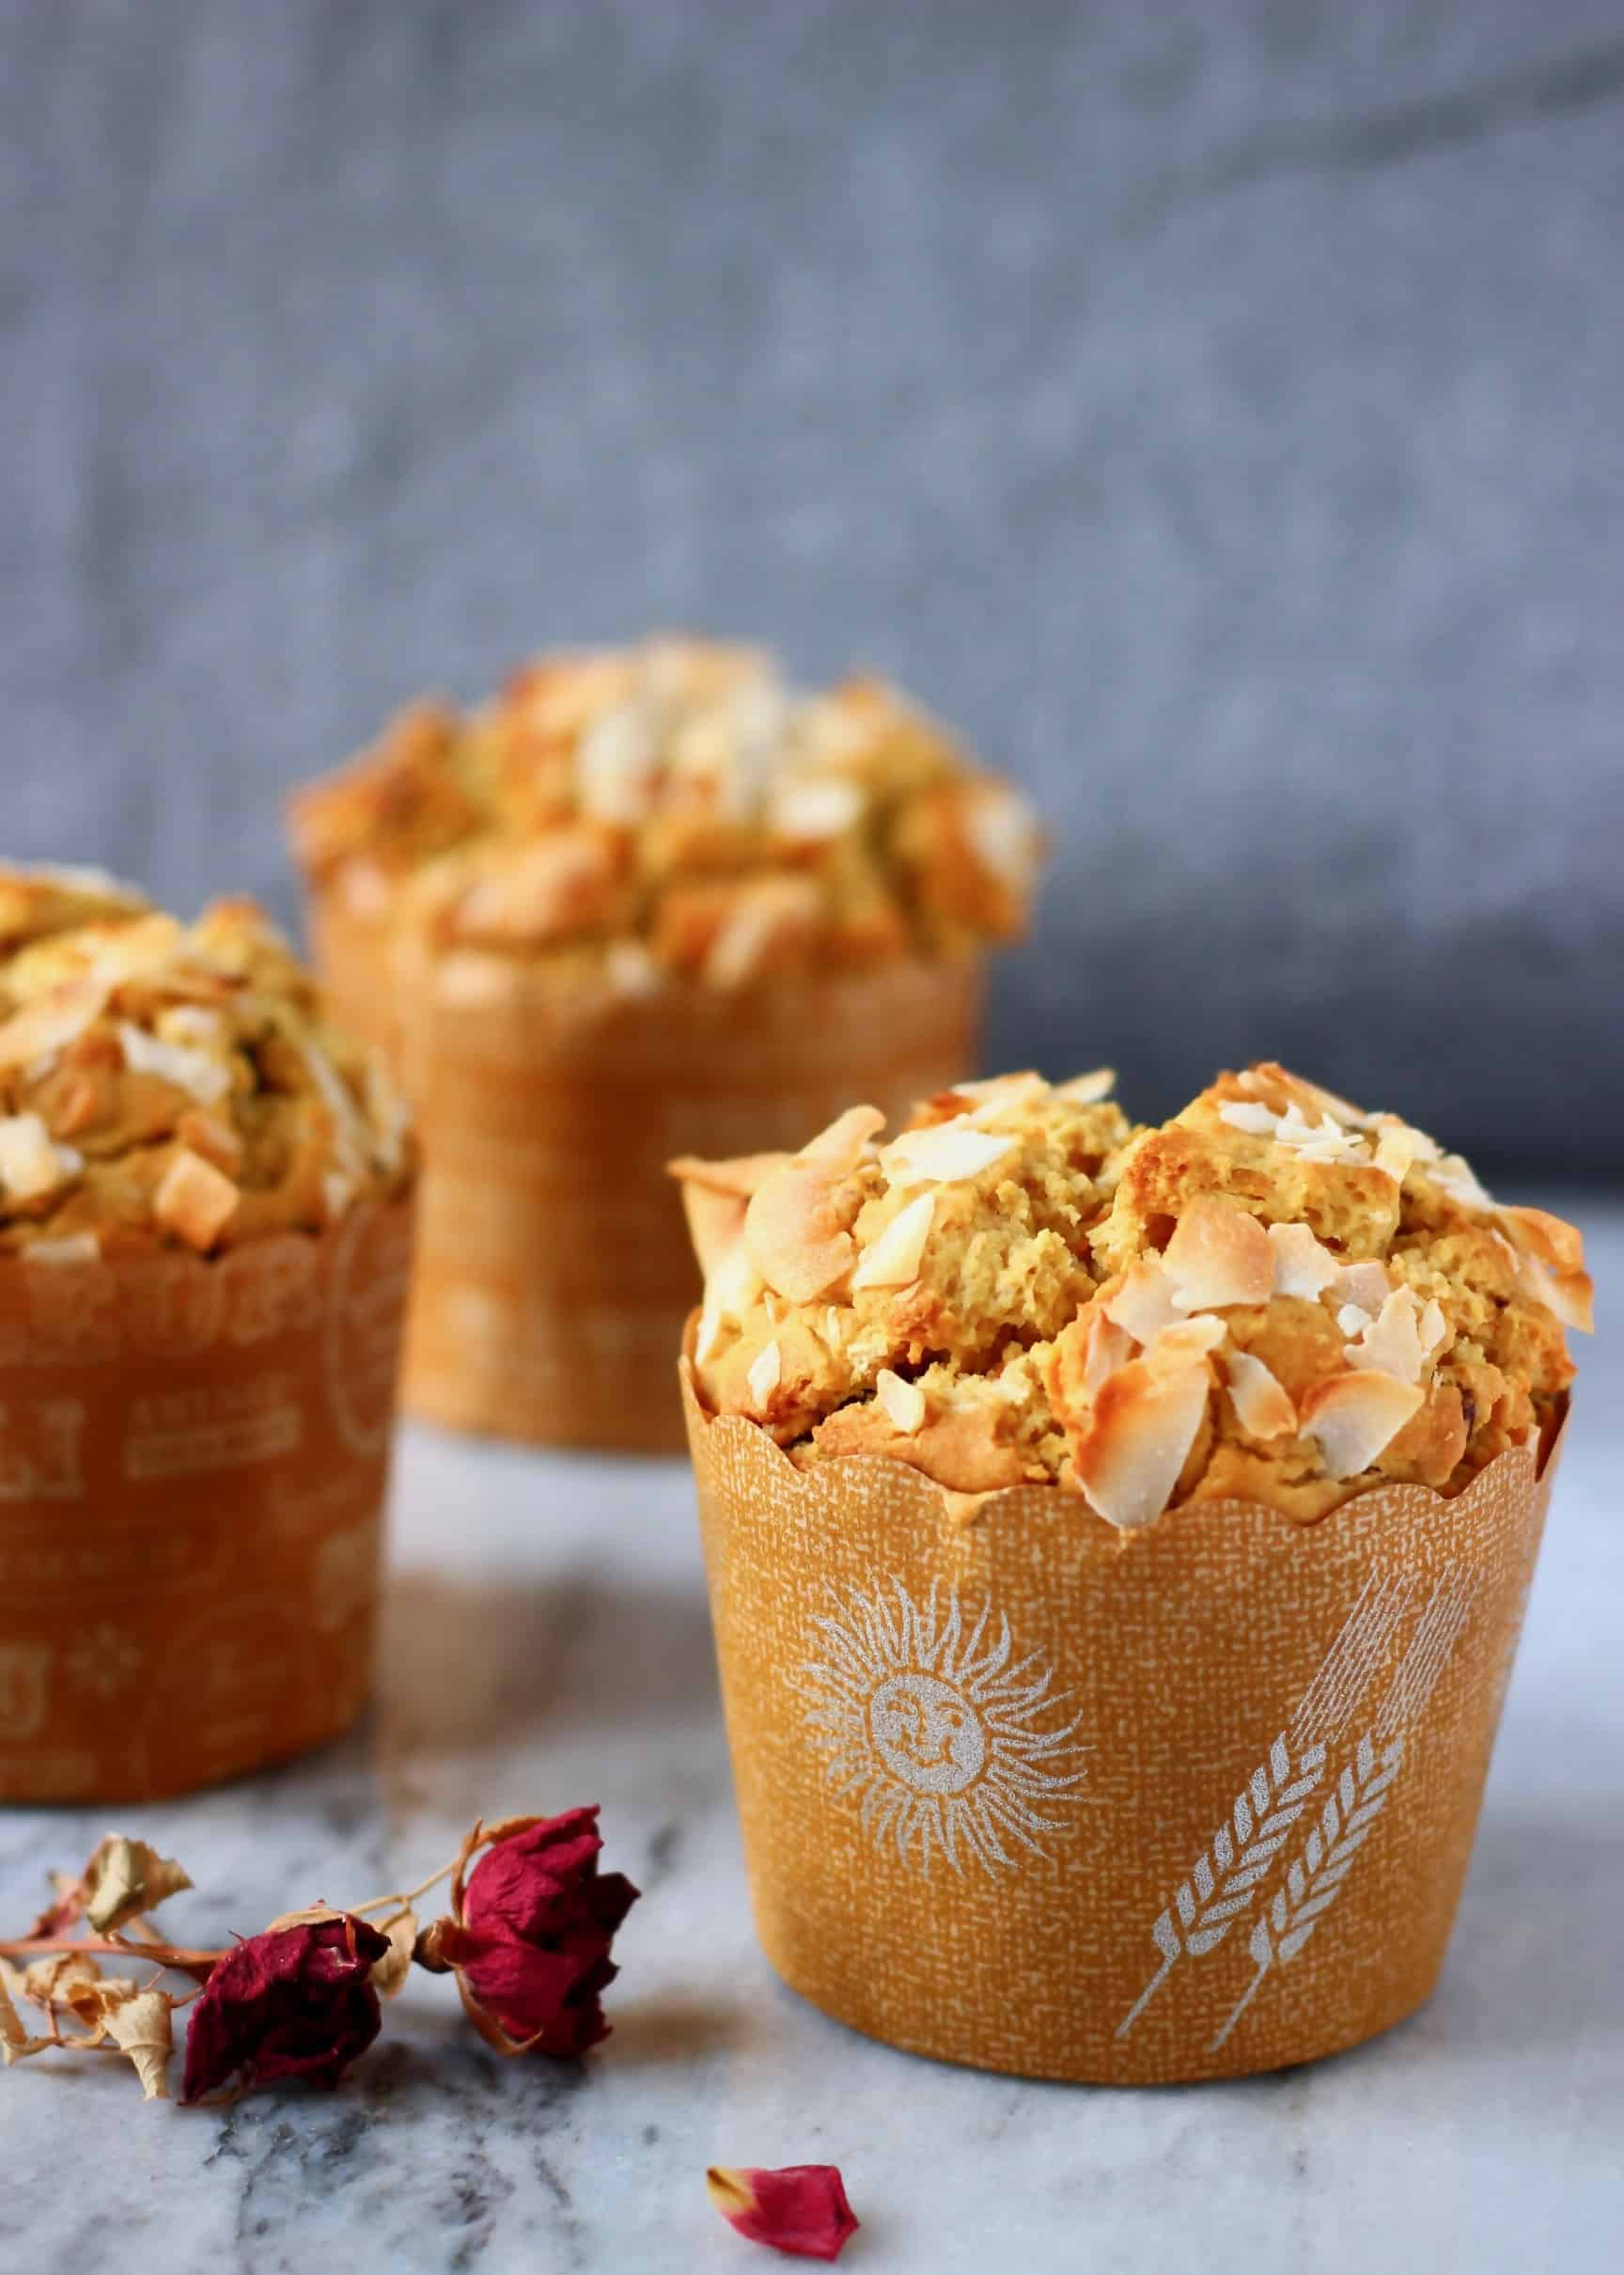 Three carrot muffins topped with coconut flakes on a marble slab decorated with dried roses against a grey fabric background